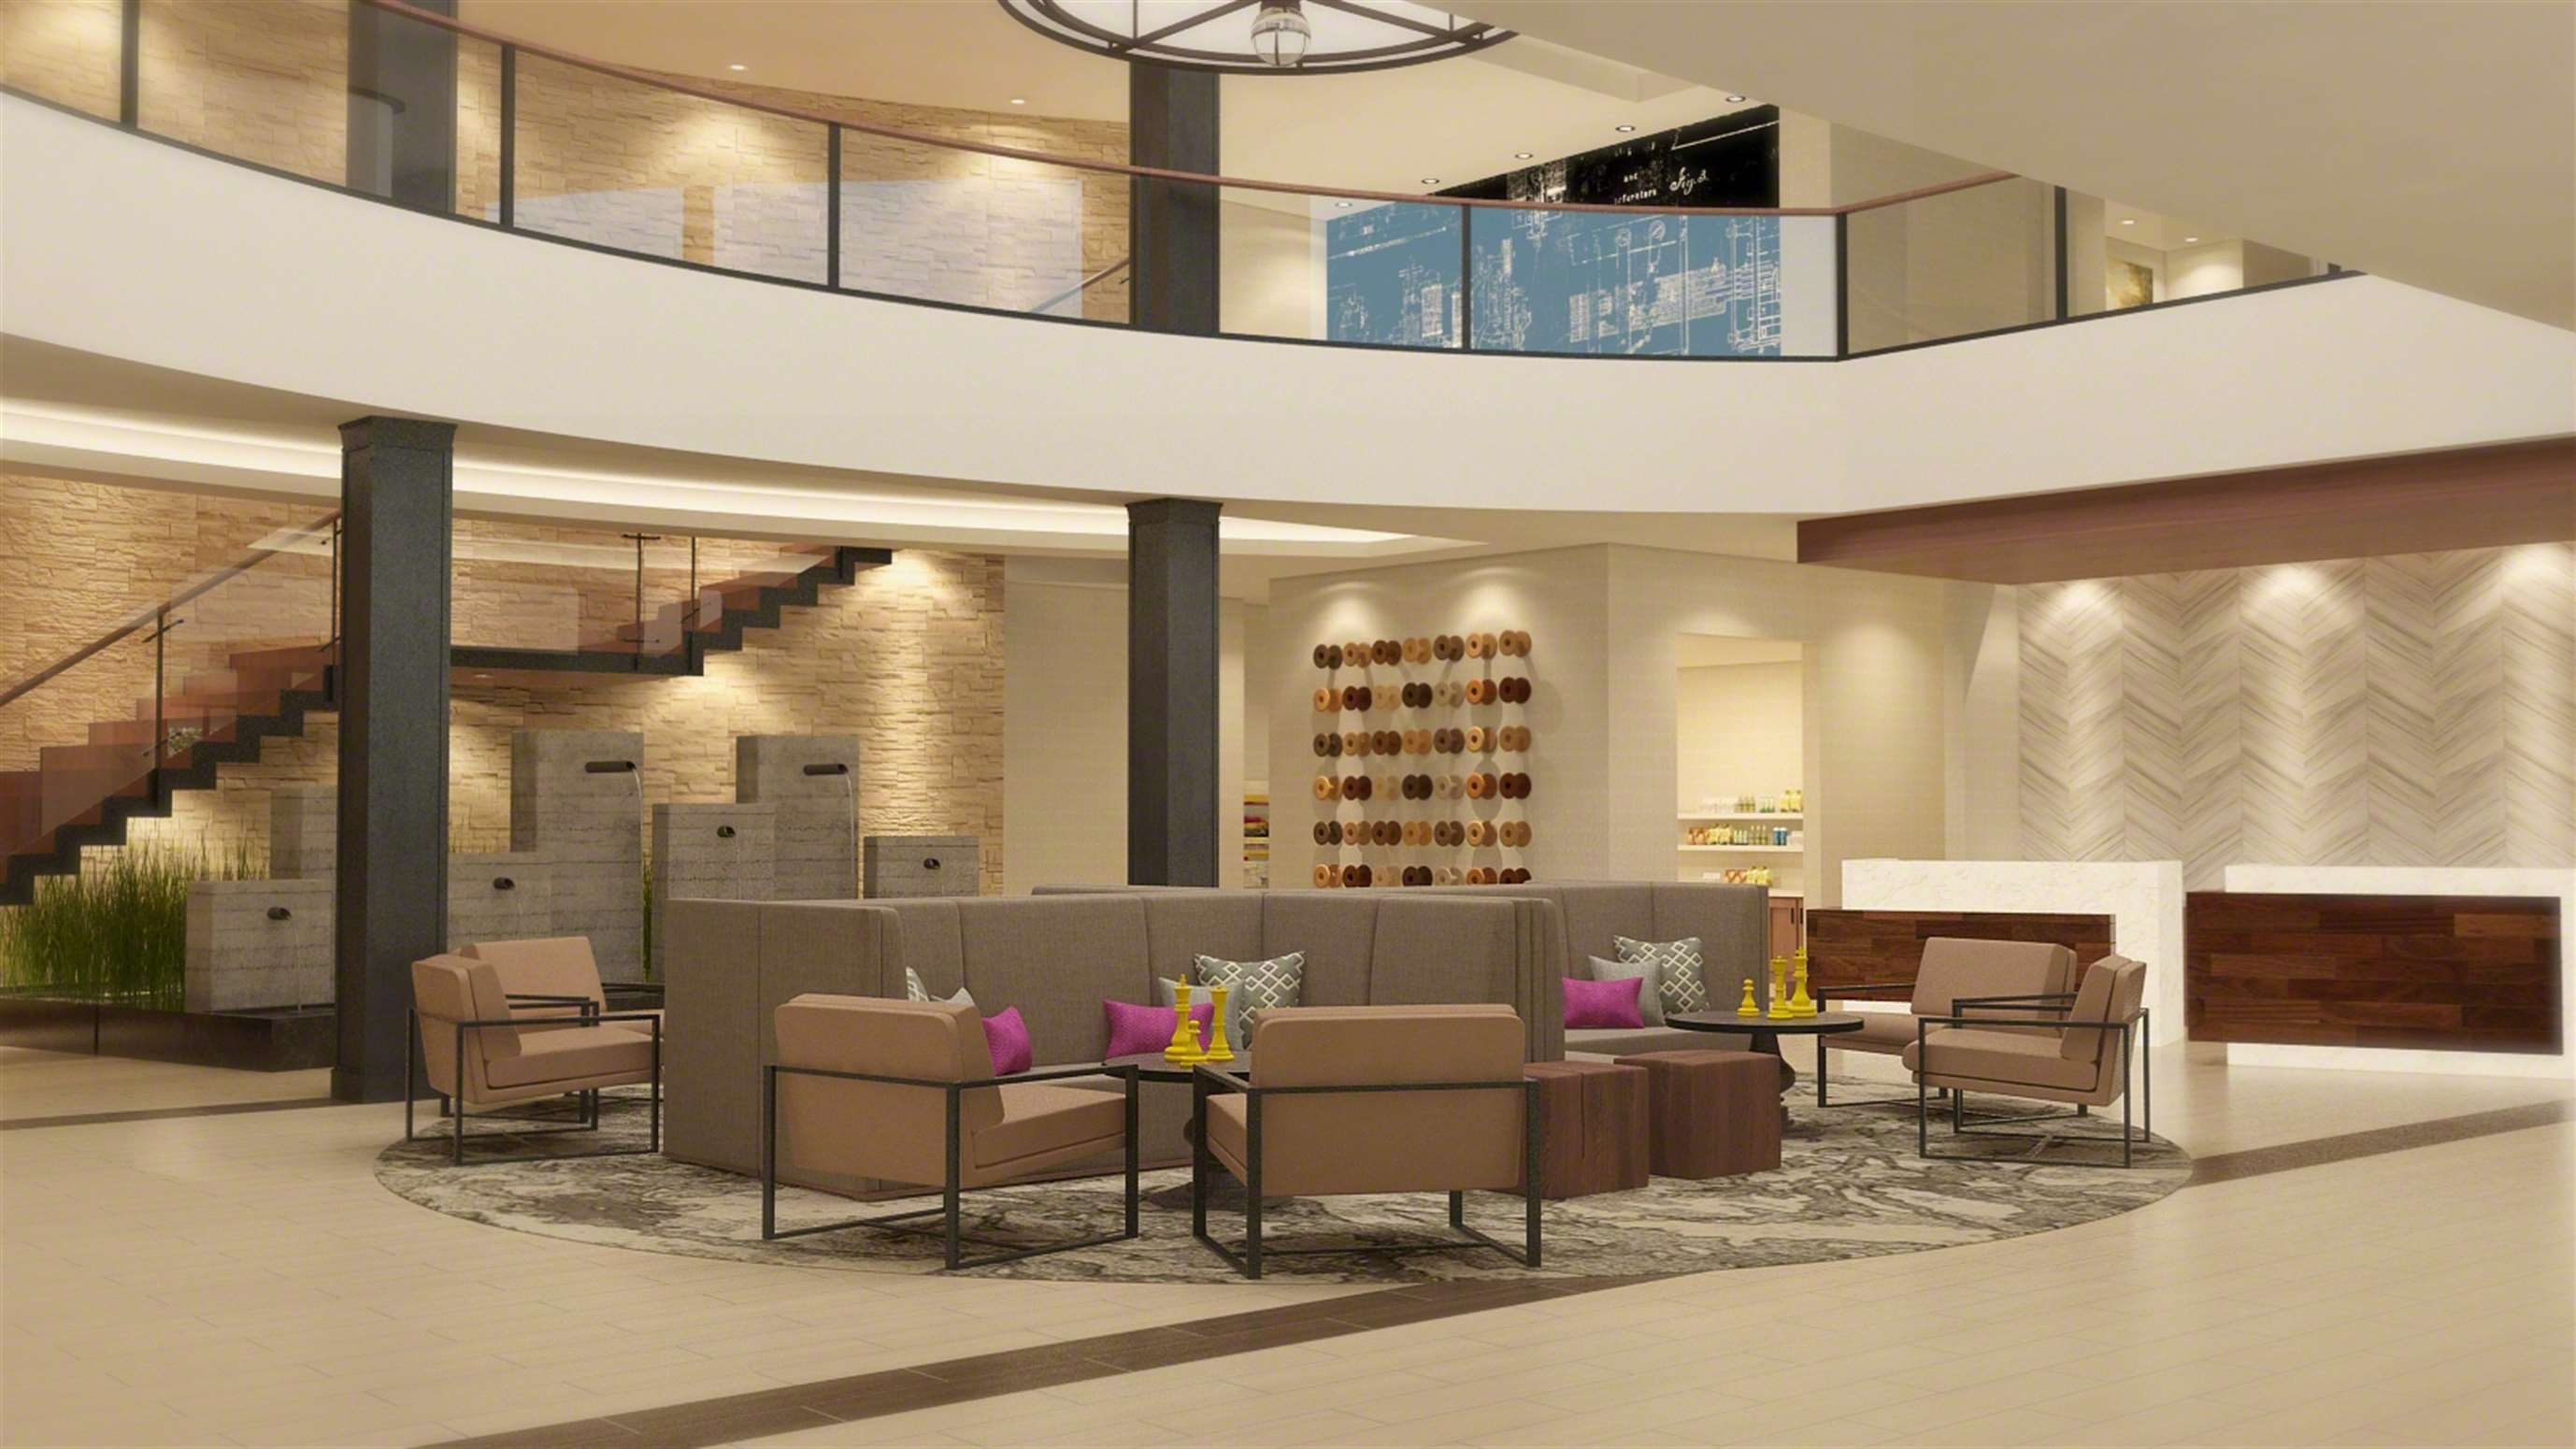 Embassy Suites by Hilton Berkeley Heights image 3